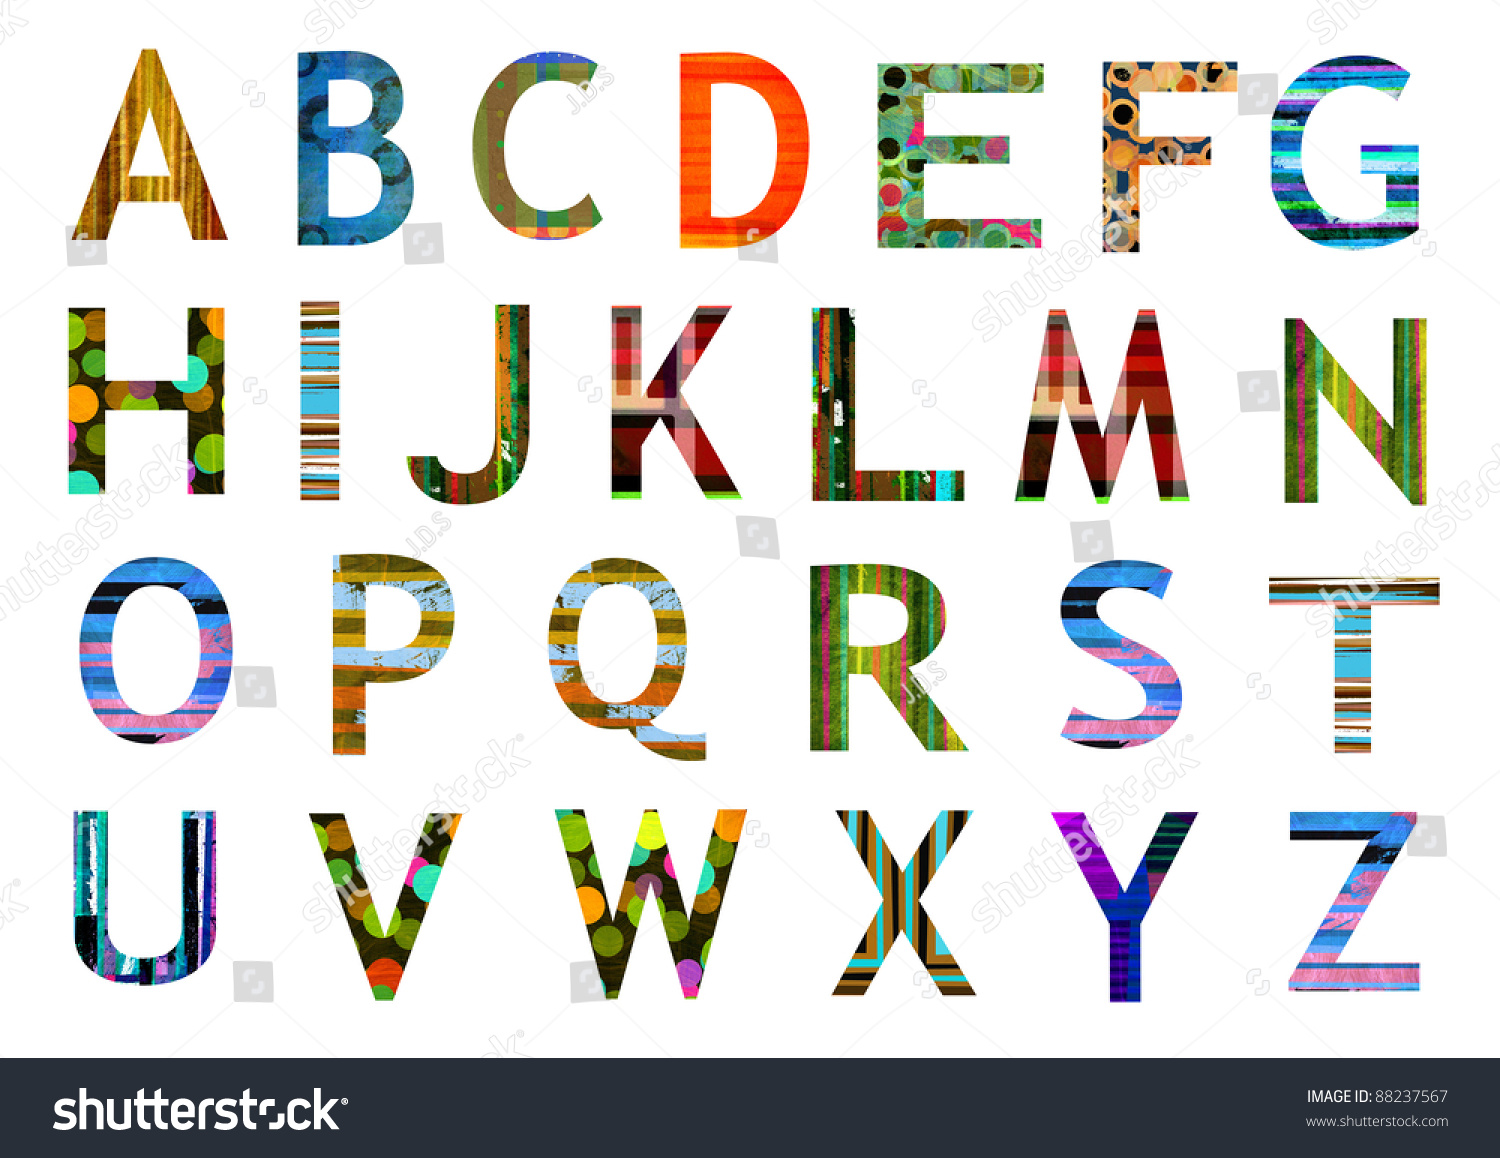 Original alphabet letters collection various colorful stock illustration 88237567 shutterstock - Lettre alphabet original ...